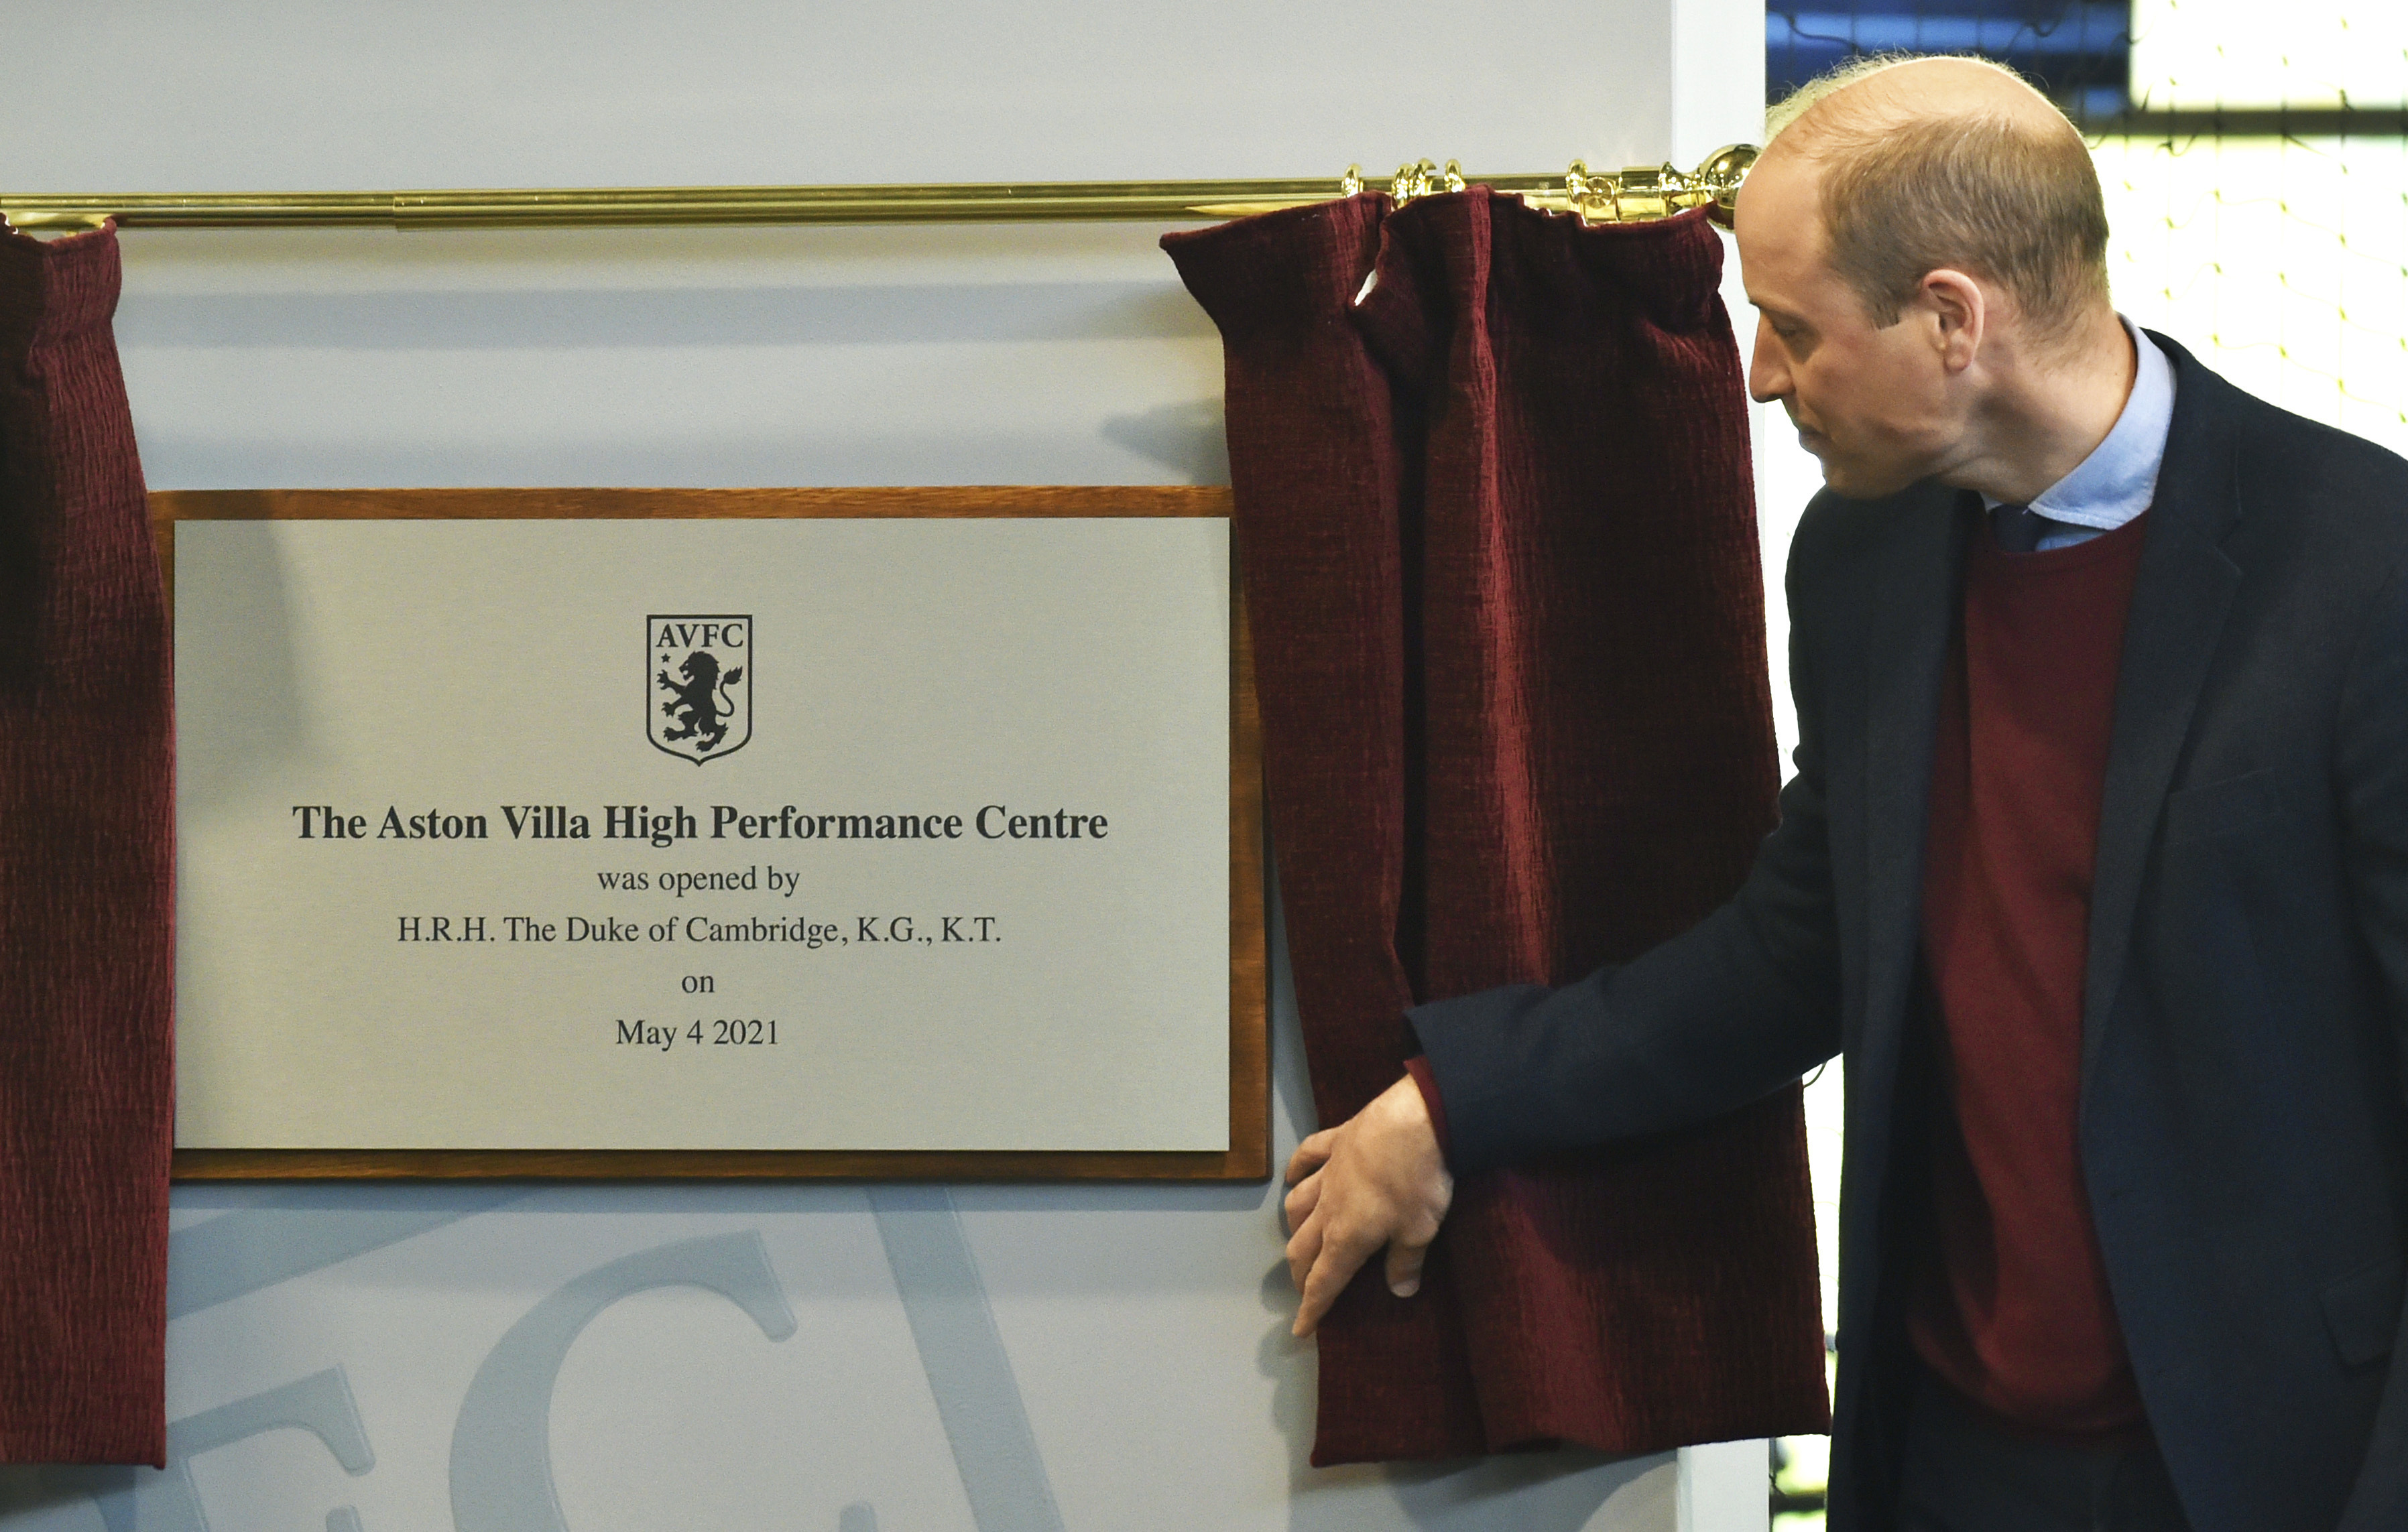 <p>Britain's Prince William, the Duke of Cambridge, unveils a plaque, during a visit to Aston Villa High Performance Centre at Bodymoor Heath Training Centre in Bodymoor Heath, England, Tuesday, May 4, 2021. (AP Photo/Rui Vieira, Pool)</p>